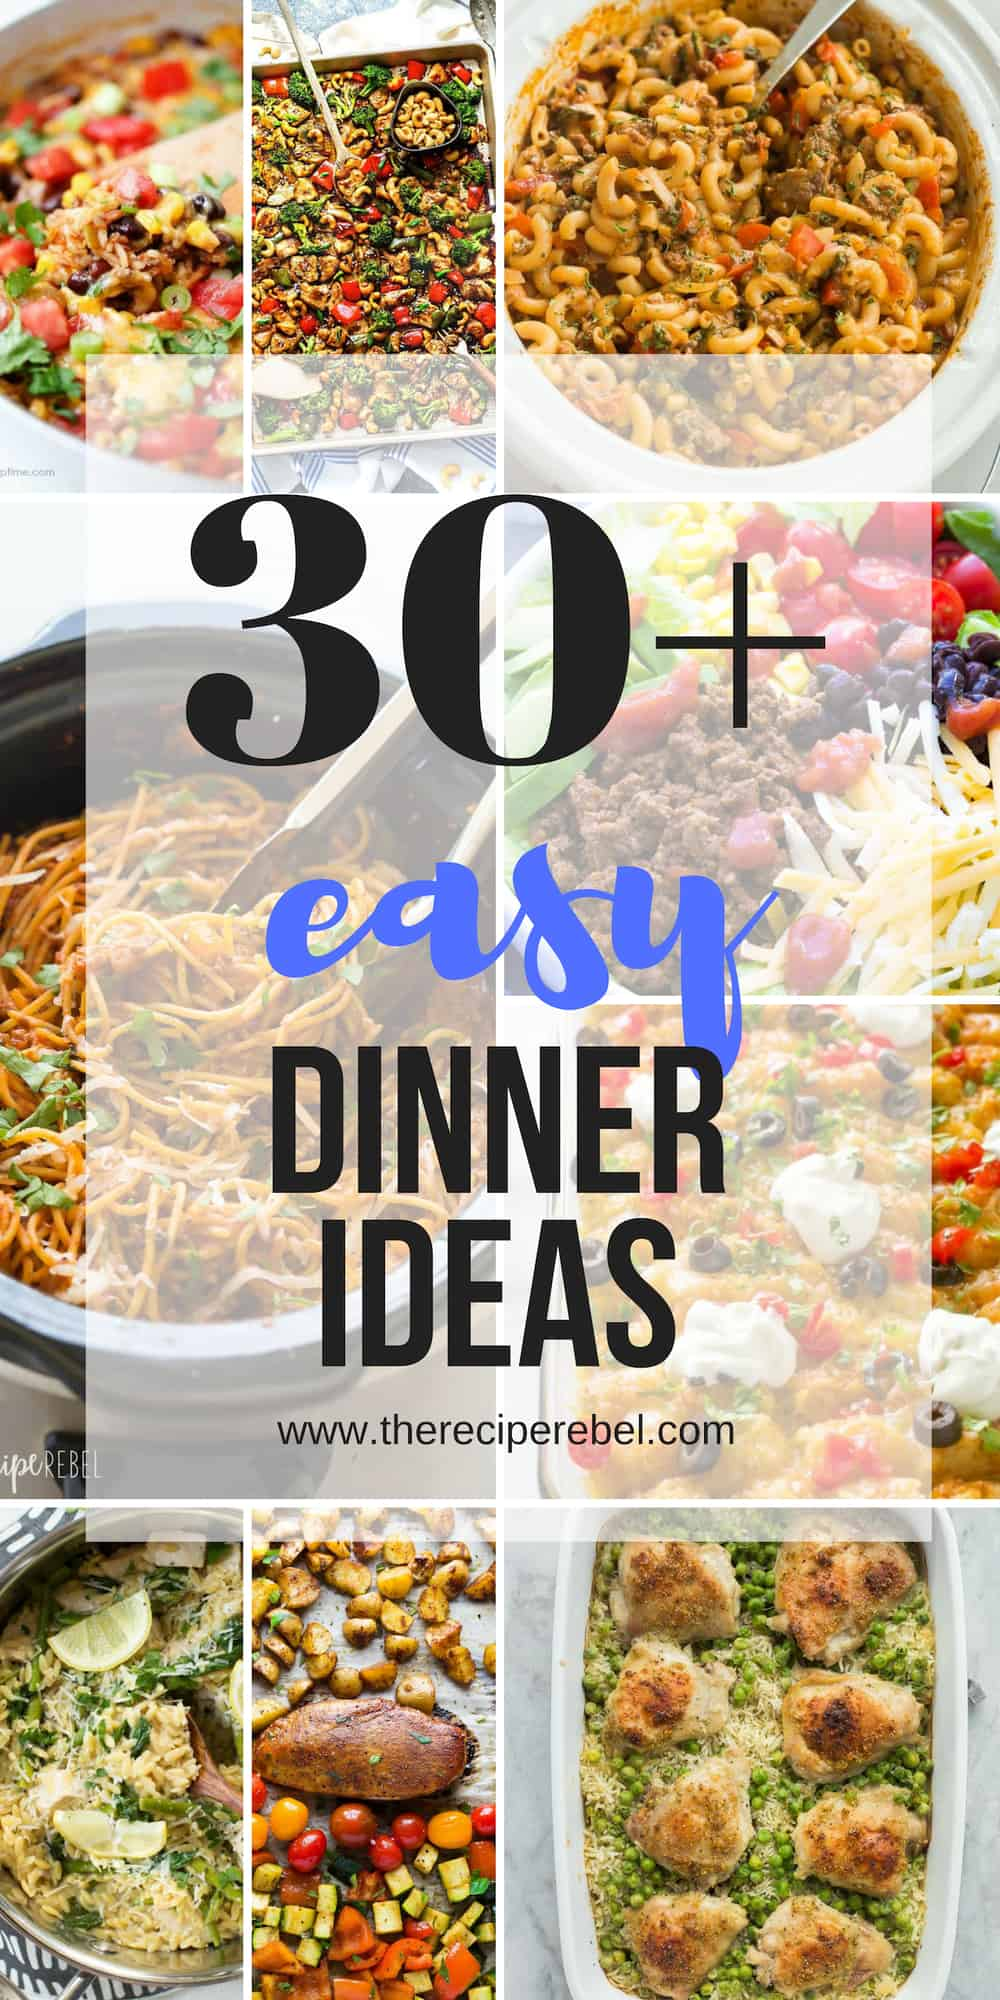 30 Quick And Easy Dinner Ideas Family Friendly The Recipe Rebel